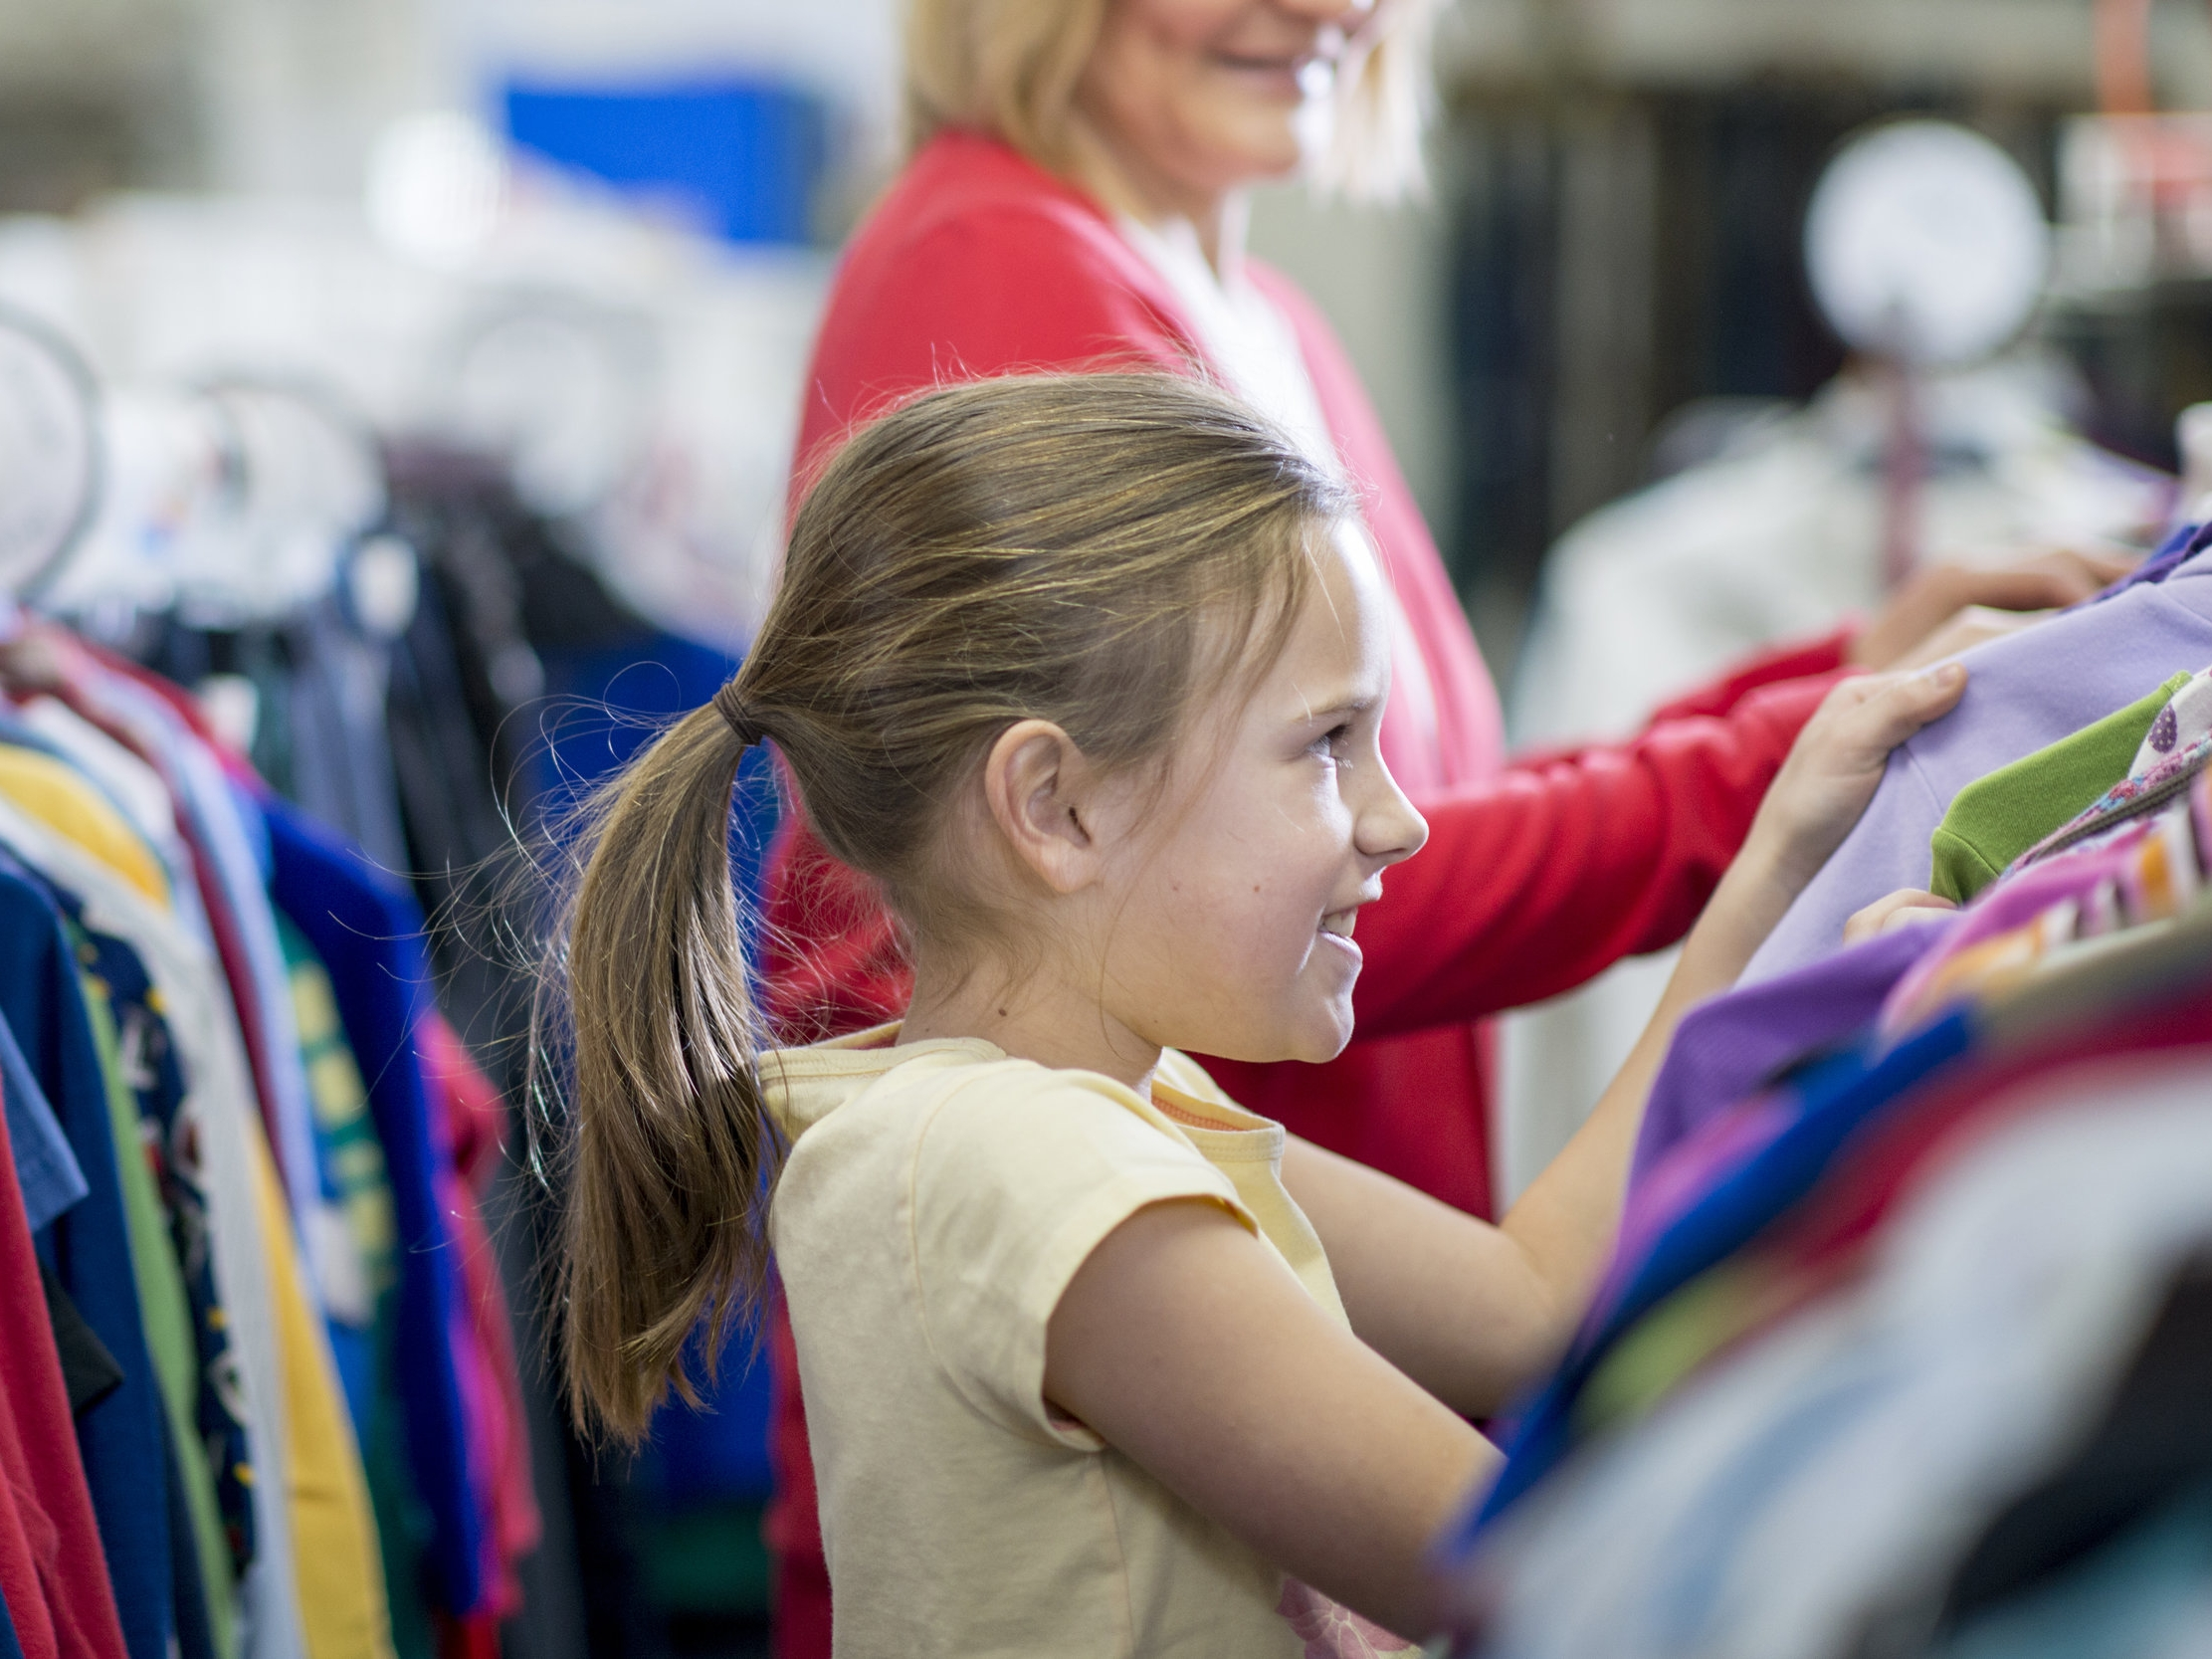 little-girl-looking-at-clothes-in-the-store-picture-id508406864.jpg